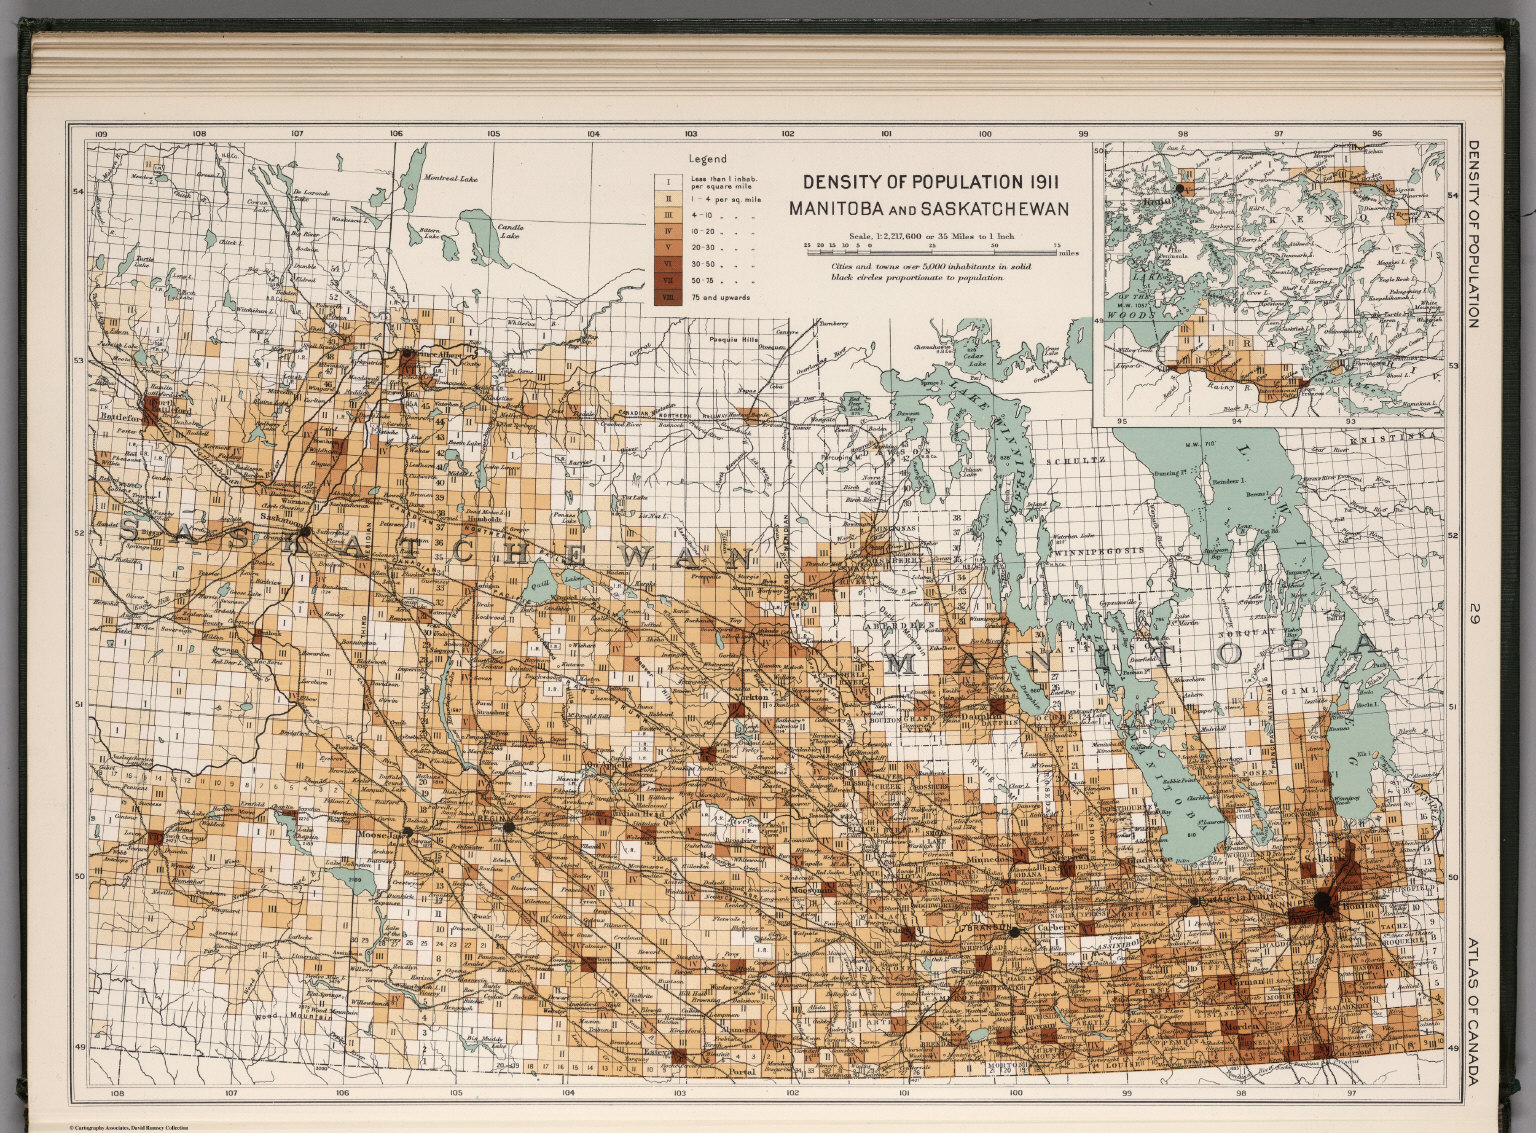 Density of population 1911 manitoba and saskatchewan david density of population 1911 manitoba and saskatchewan gumiabroncs Gallery